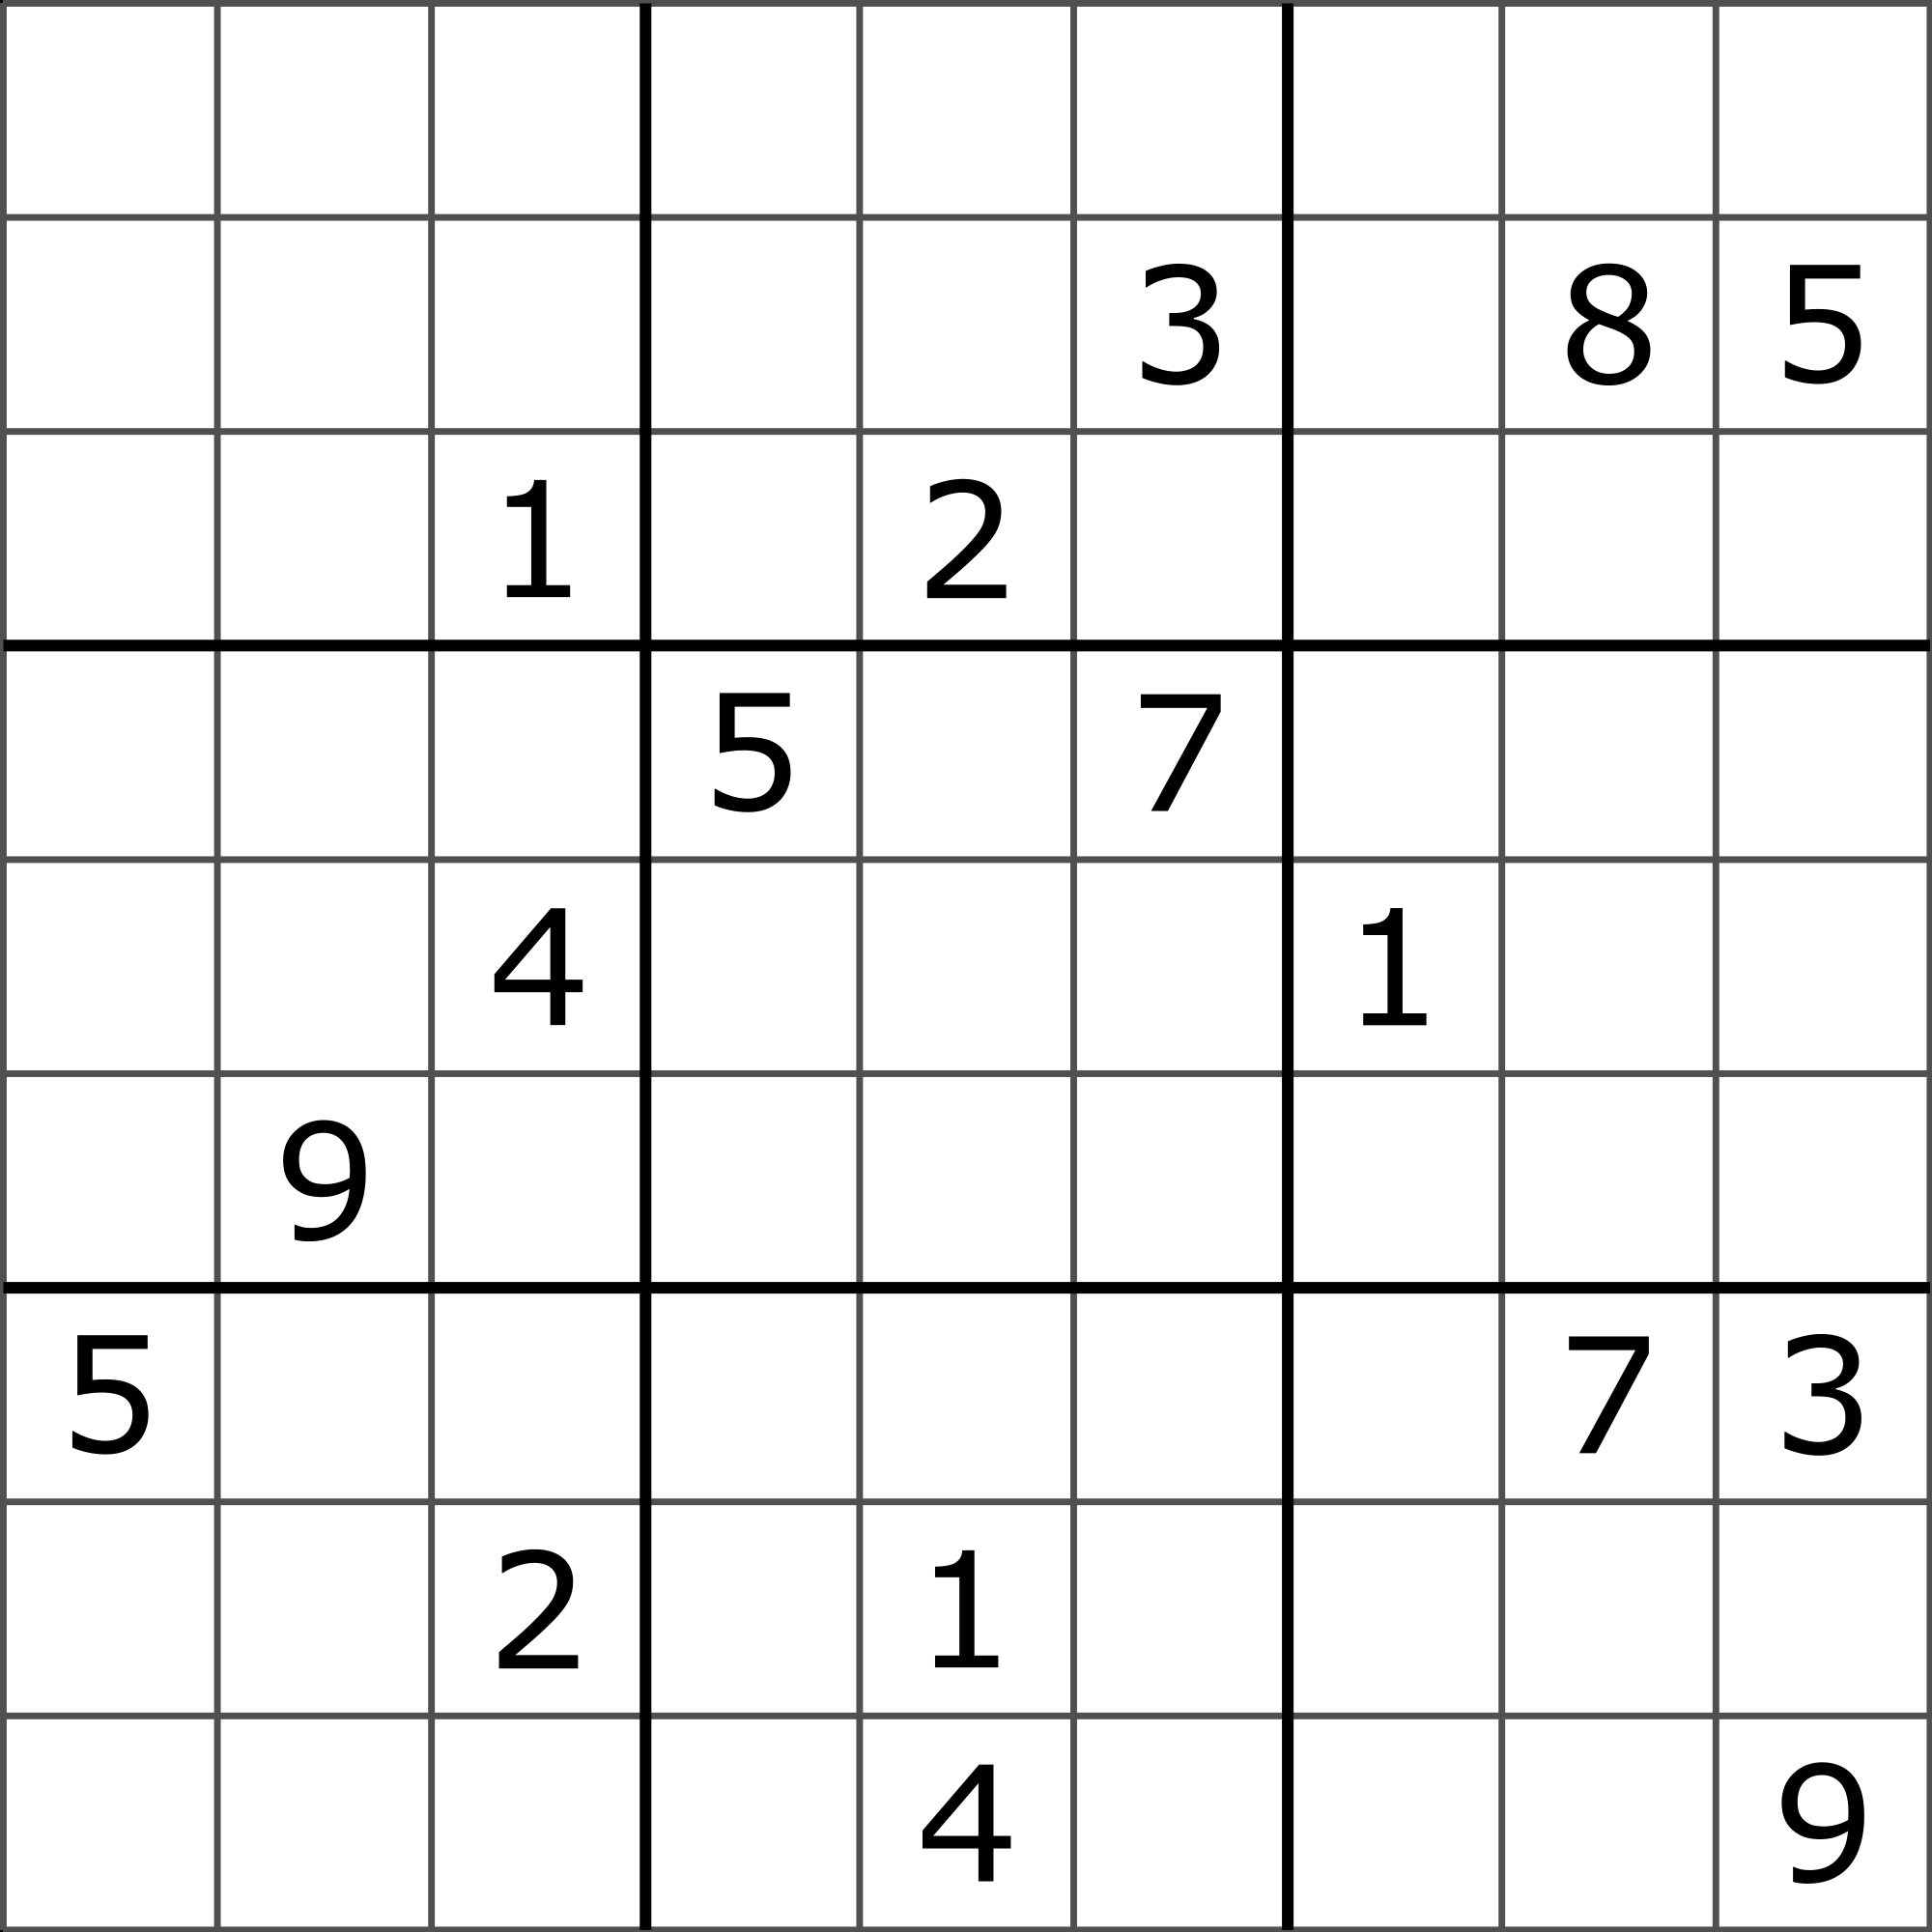 Solving Sudoku Using A Simple Search Algorithm - George Seif